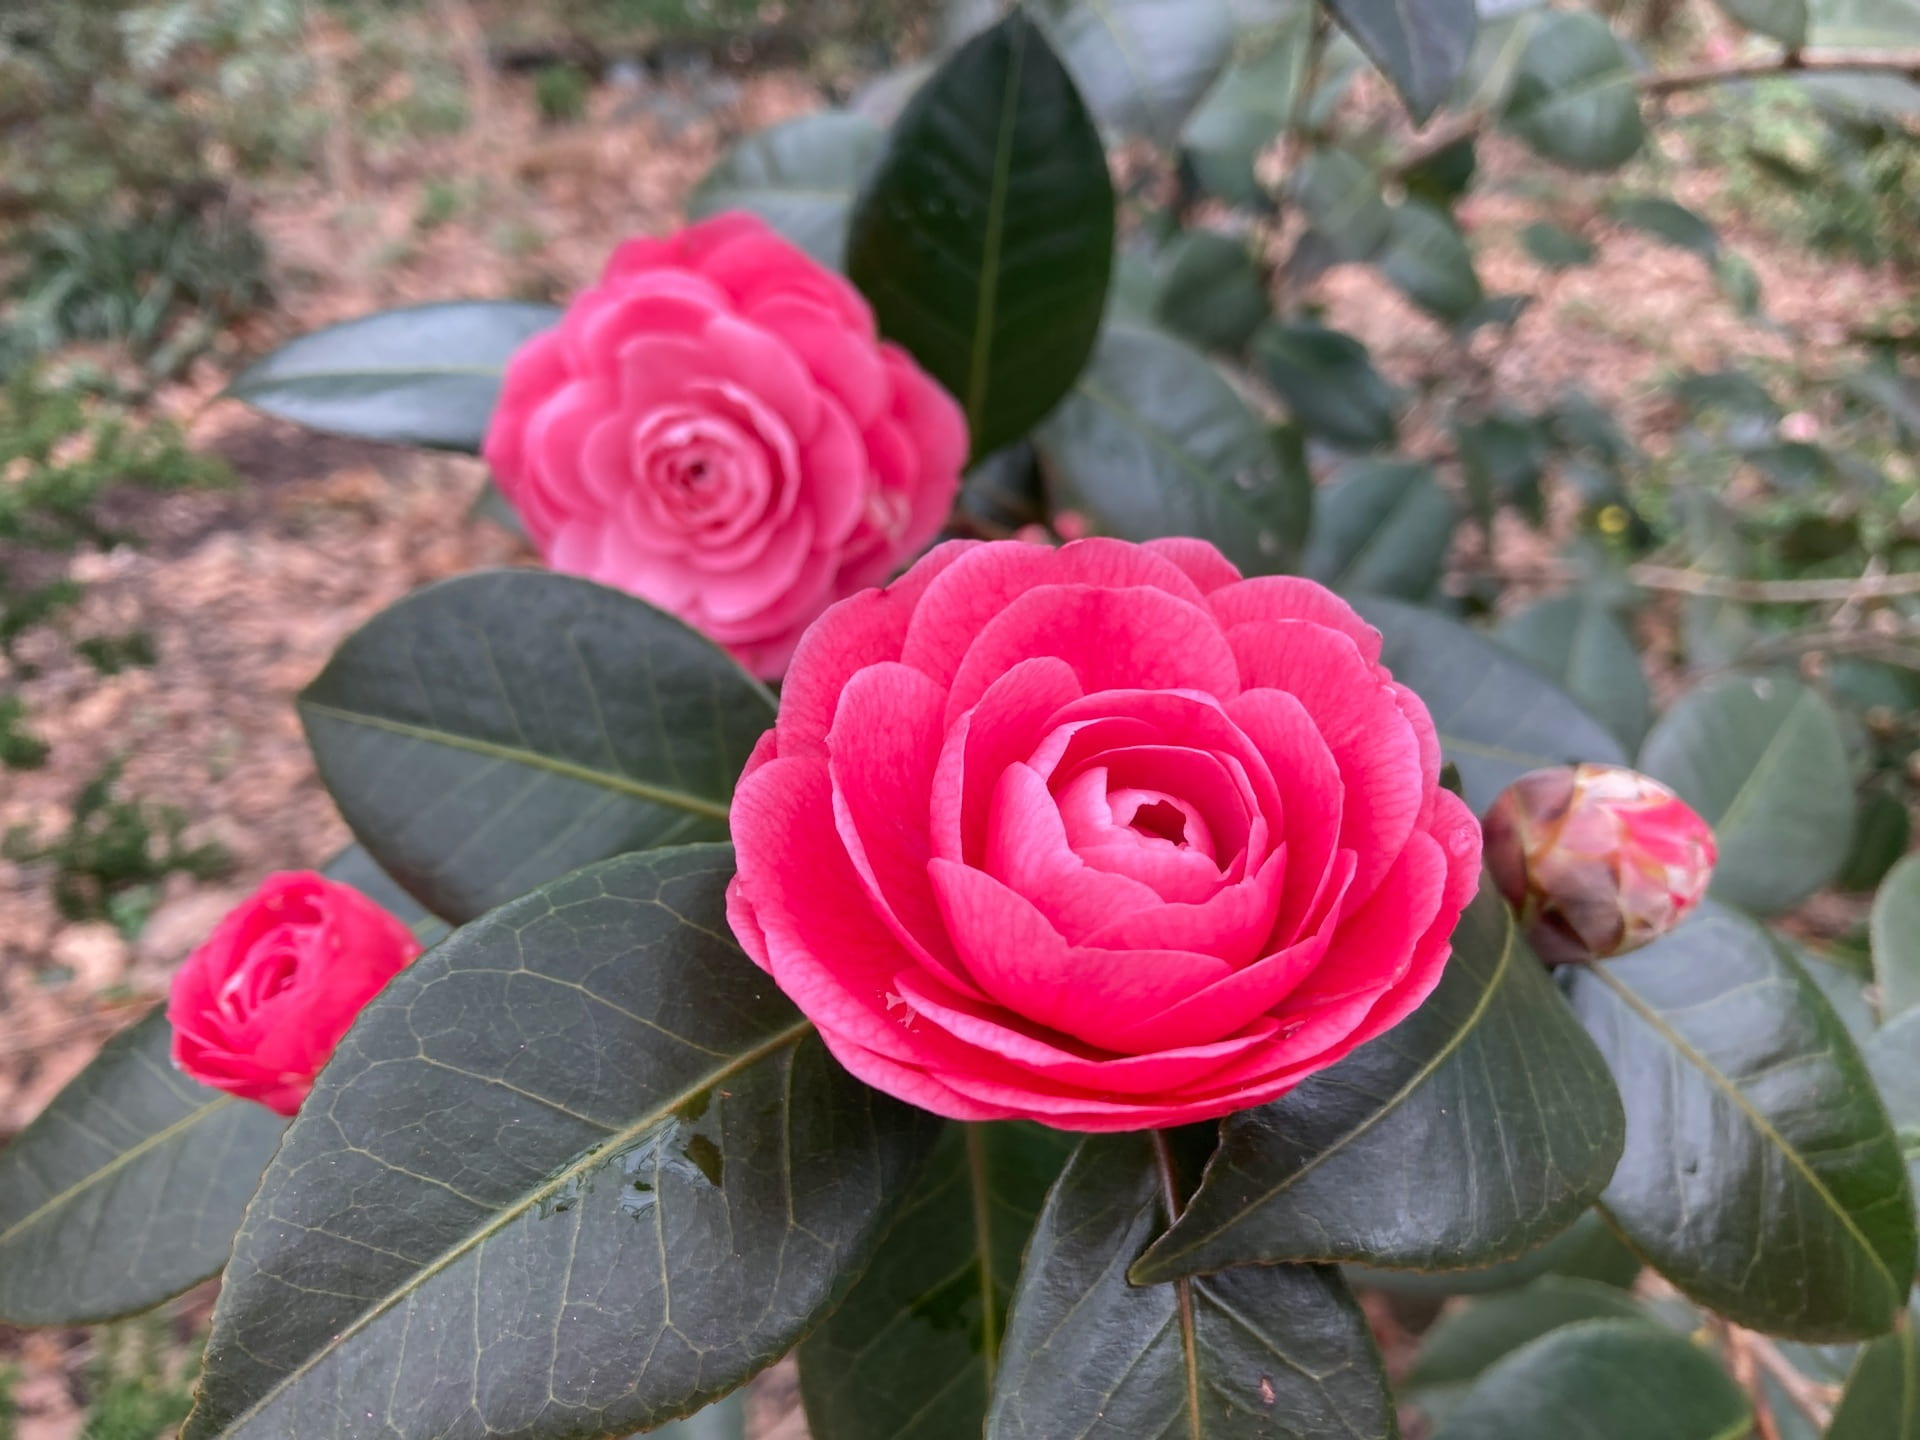 Camellia japonica 'April Kiss' flowers steal the show.